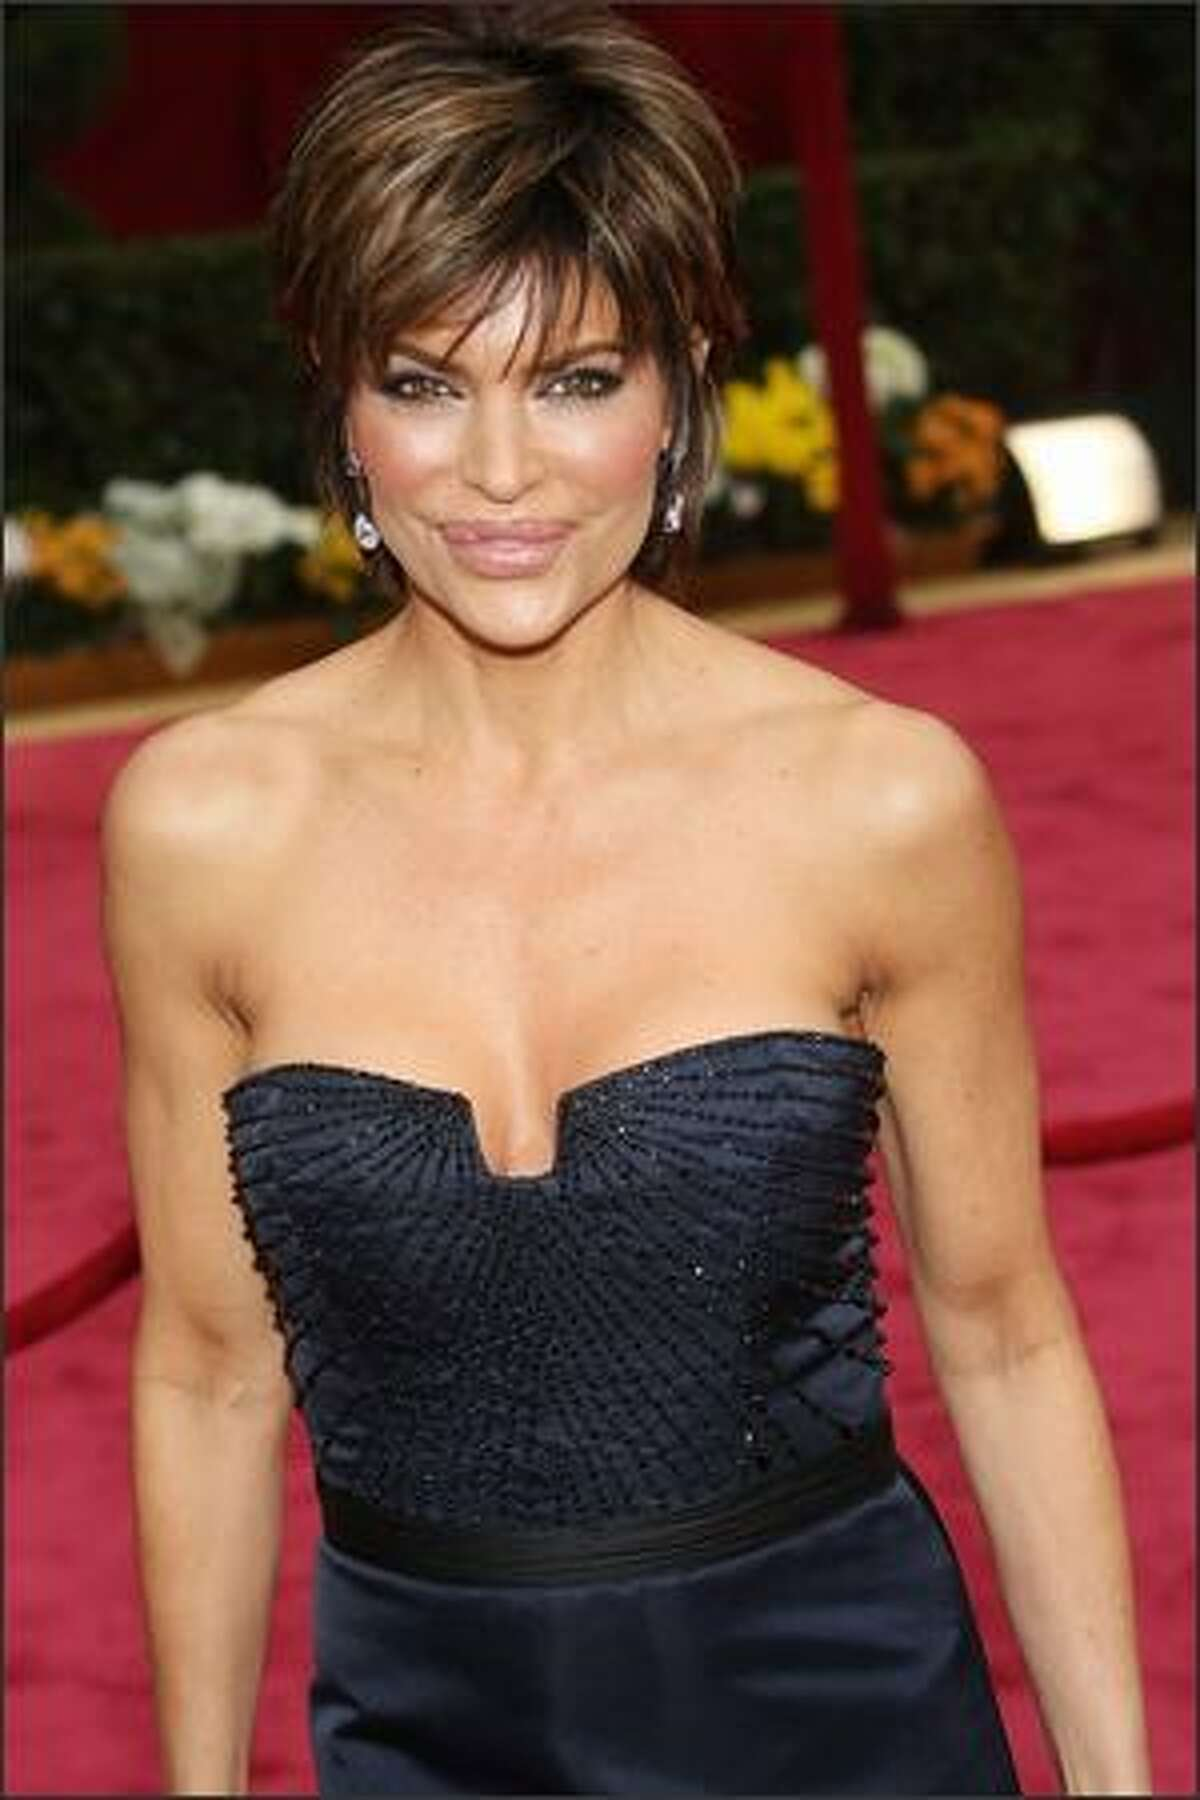 Actress Lisa Rinna arrives at the 80th Annual Academy Awards held at the Kodak Theatre in Hollywood, California.